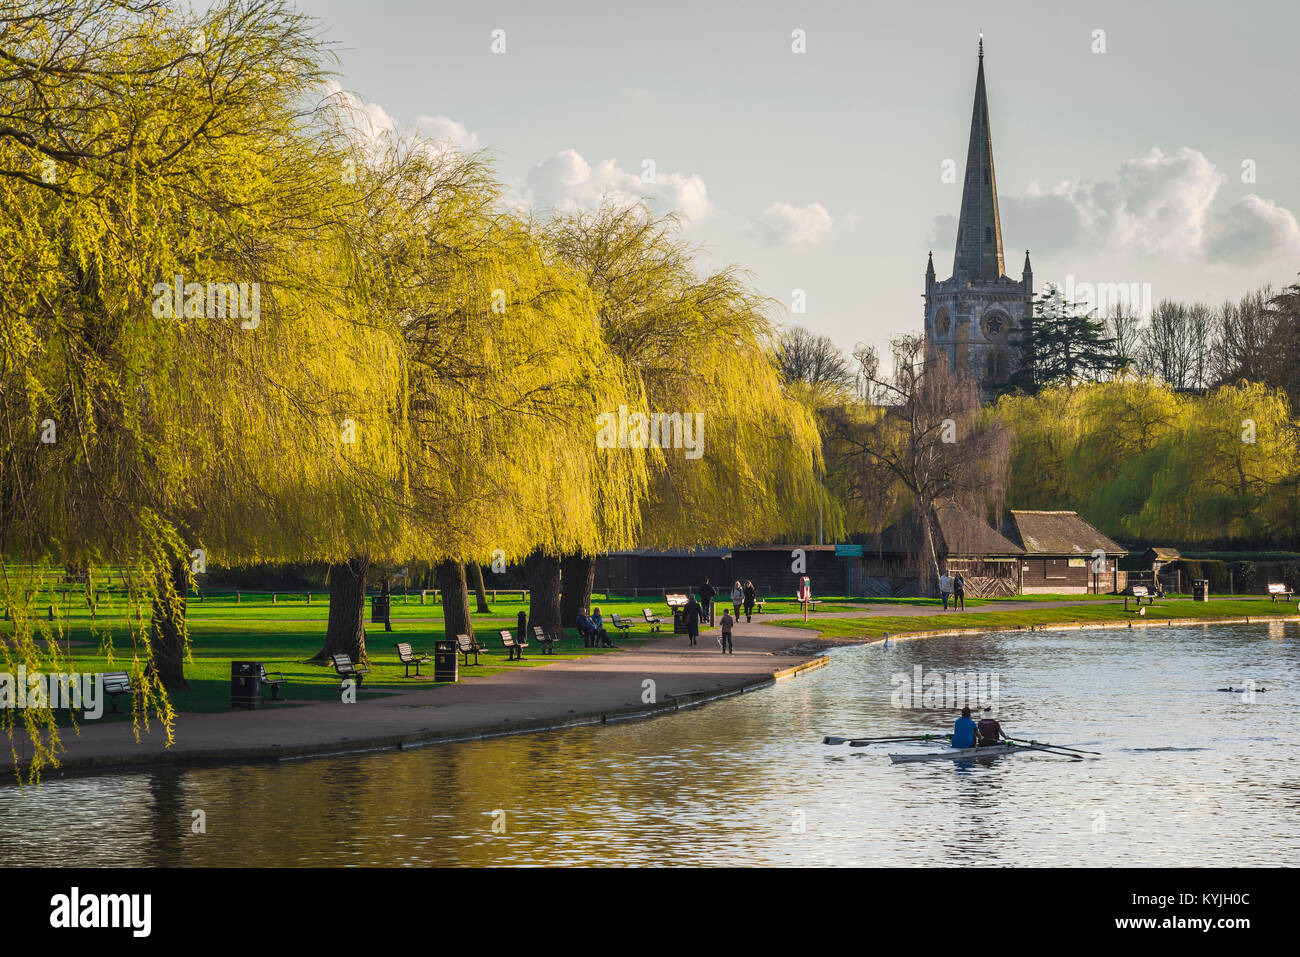 Stratford Upon Avon, view of the willow-lined River Avon and Holy Trinity Church in the centre of Stratford Upon - Stock Image